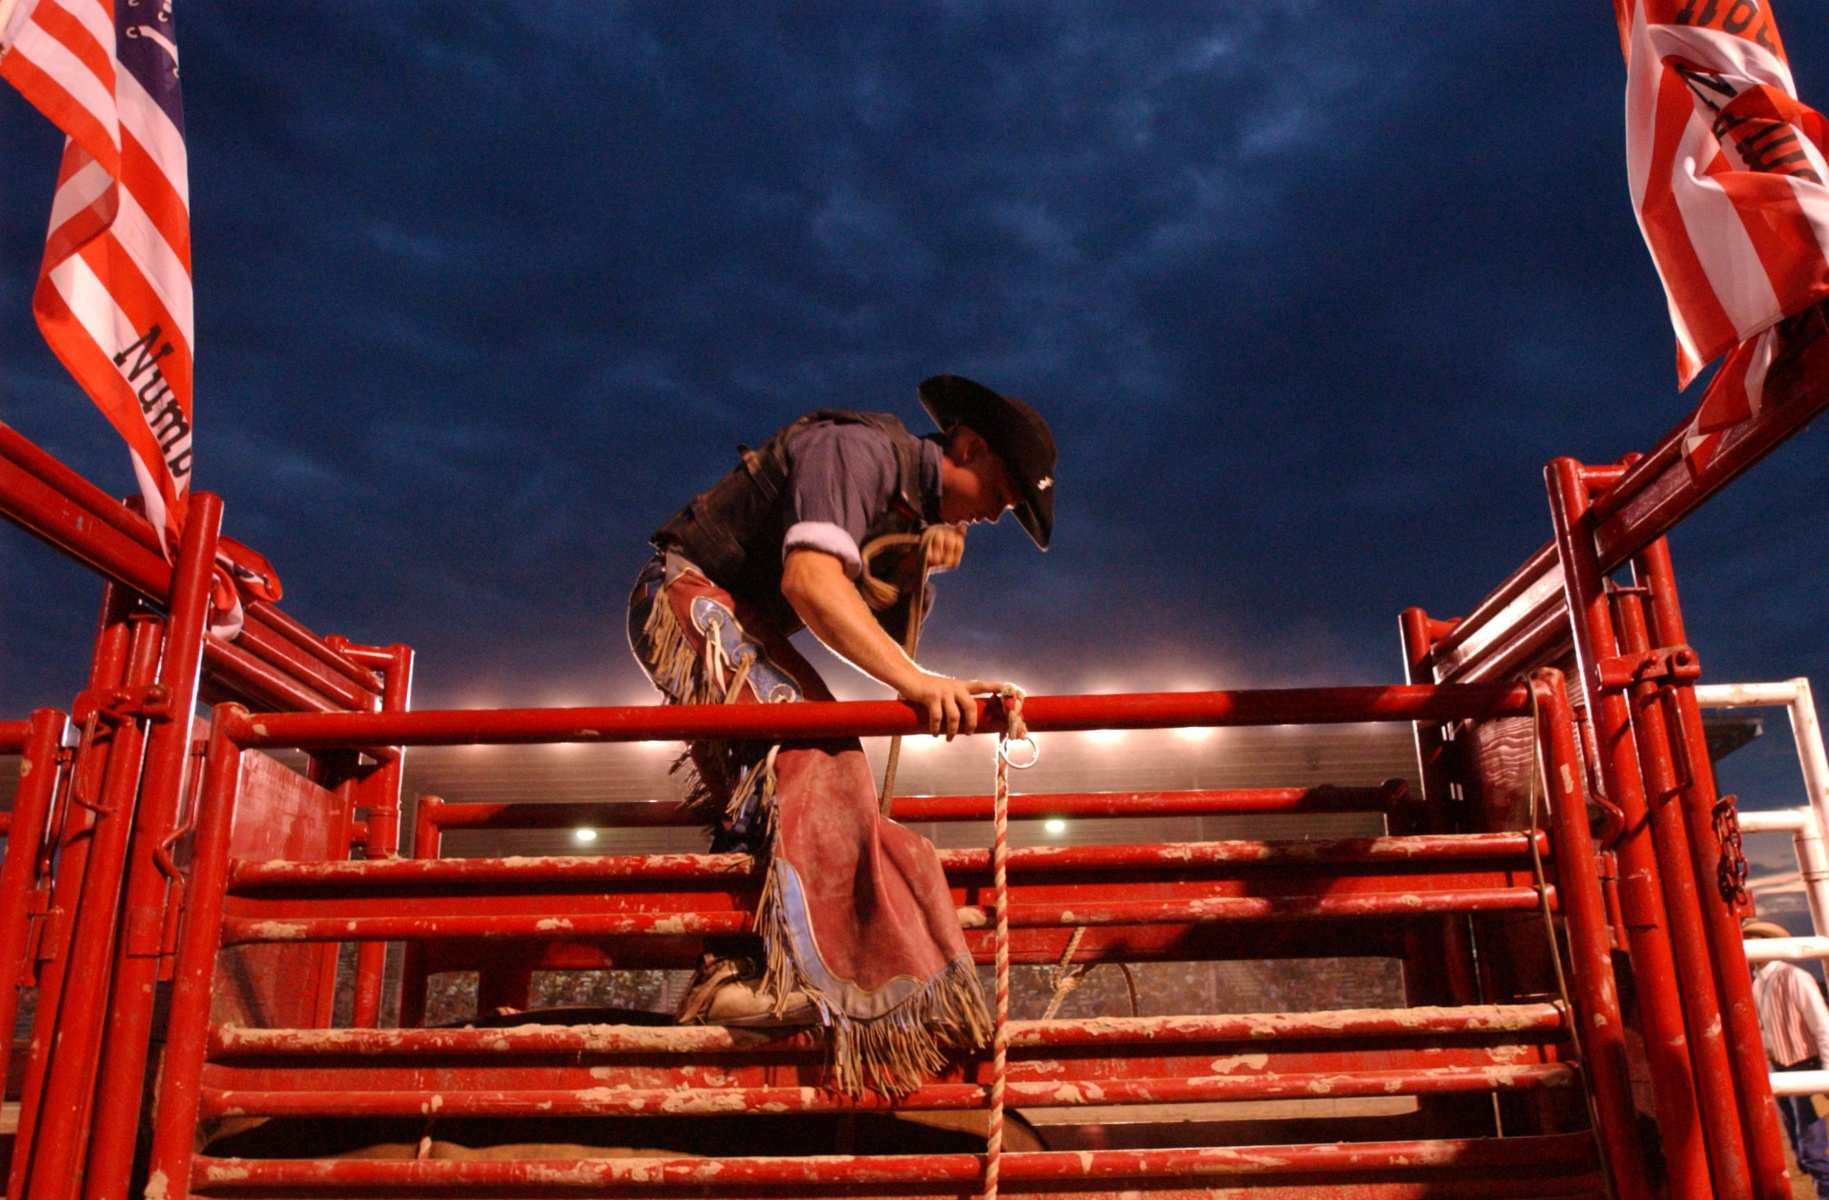 Lowell, Mich. resident Brad Russ helps a friend prepare for the bull riding event during the Flying Star Rodeo held at the Monroe, Mich. fairgrounds.